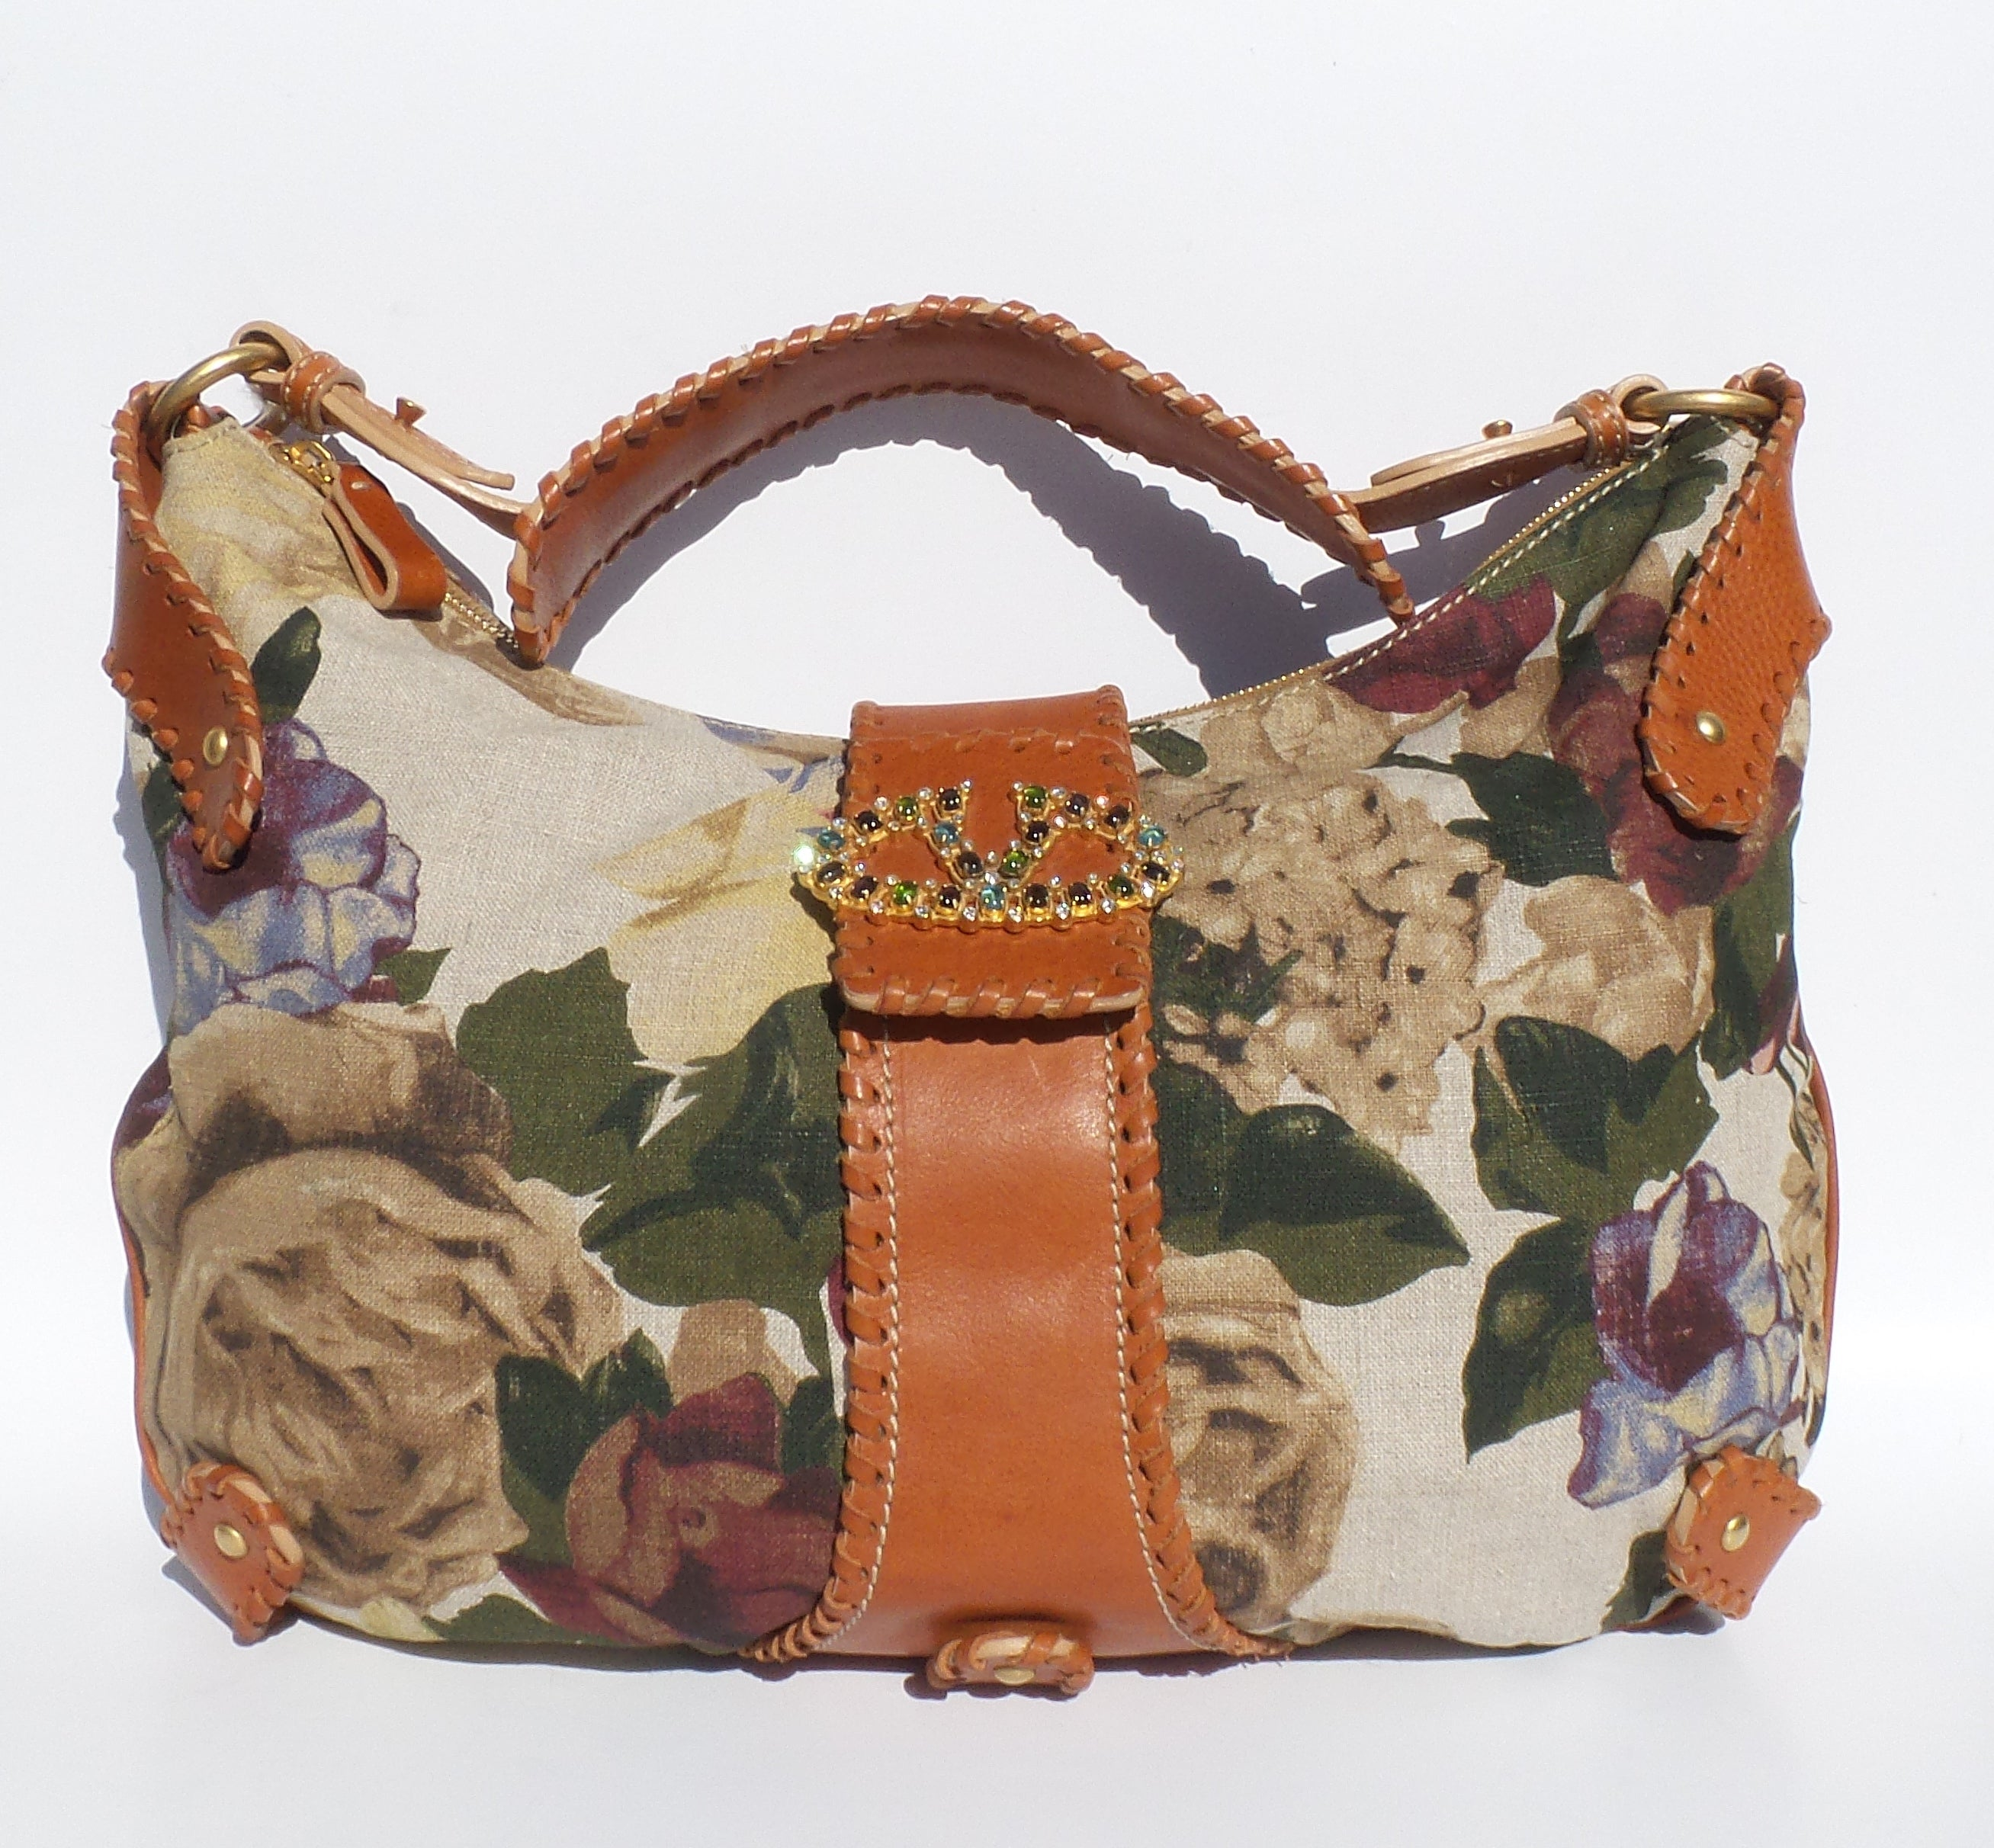 'Sold' VALENTINO Garavani Floral Print Linen Tan Cognac Leather V Clasp Catch Hobo Bag